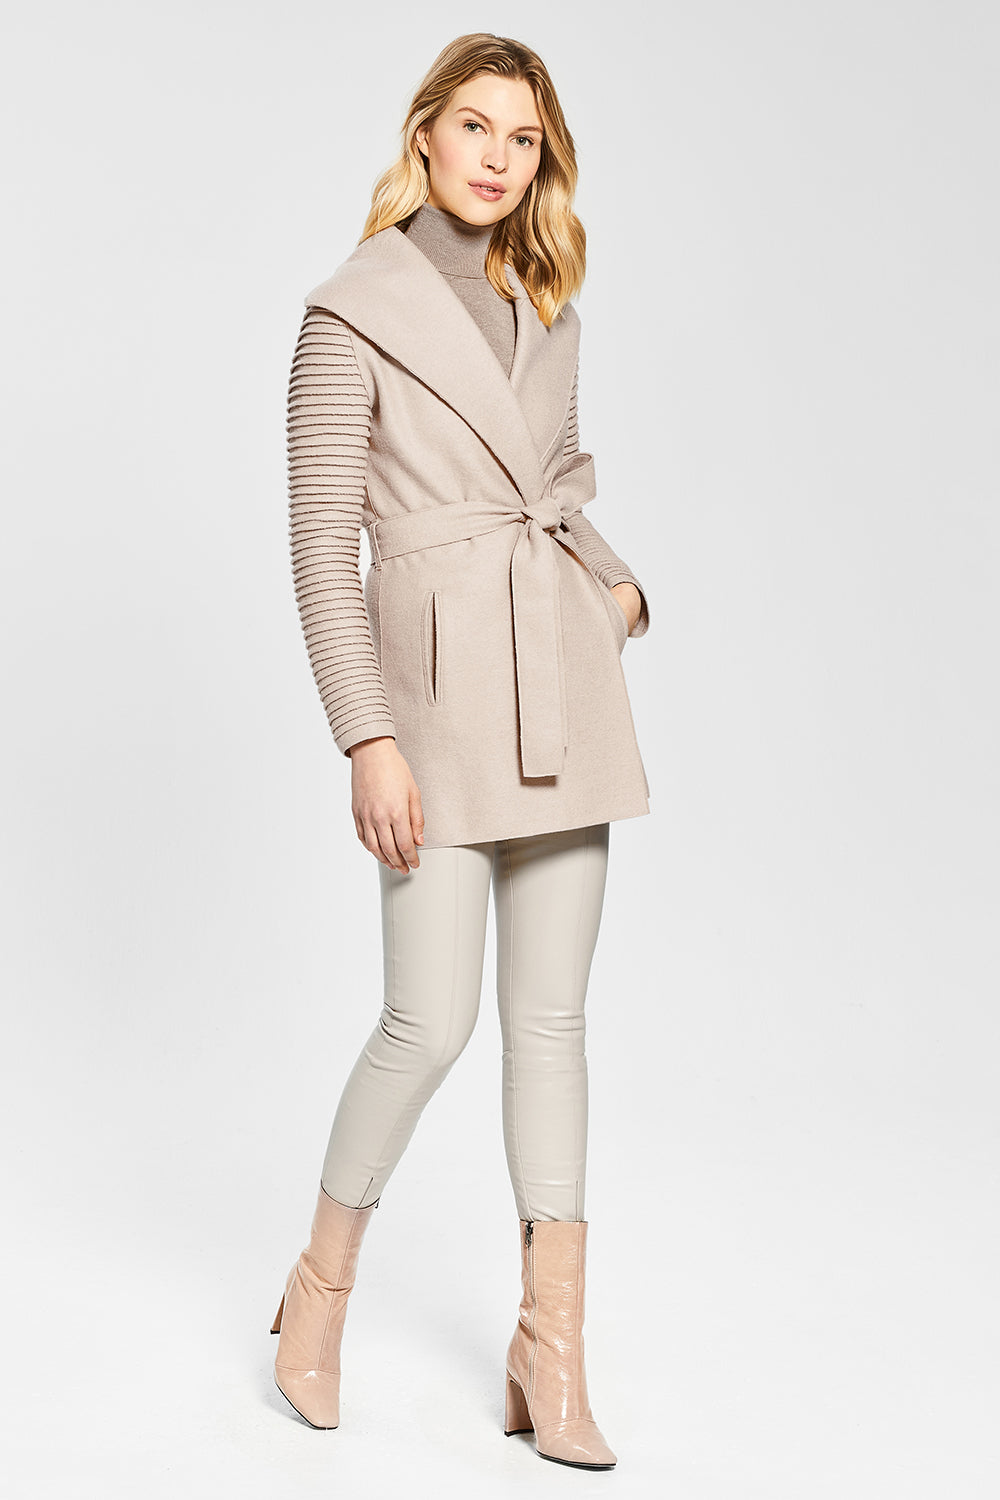 Sentaler Wrap Coat with Ribbed Sleeves featured in Superfine Alpaca and available in Chamois. Seen from side.